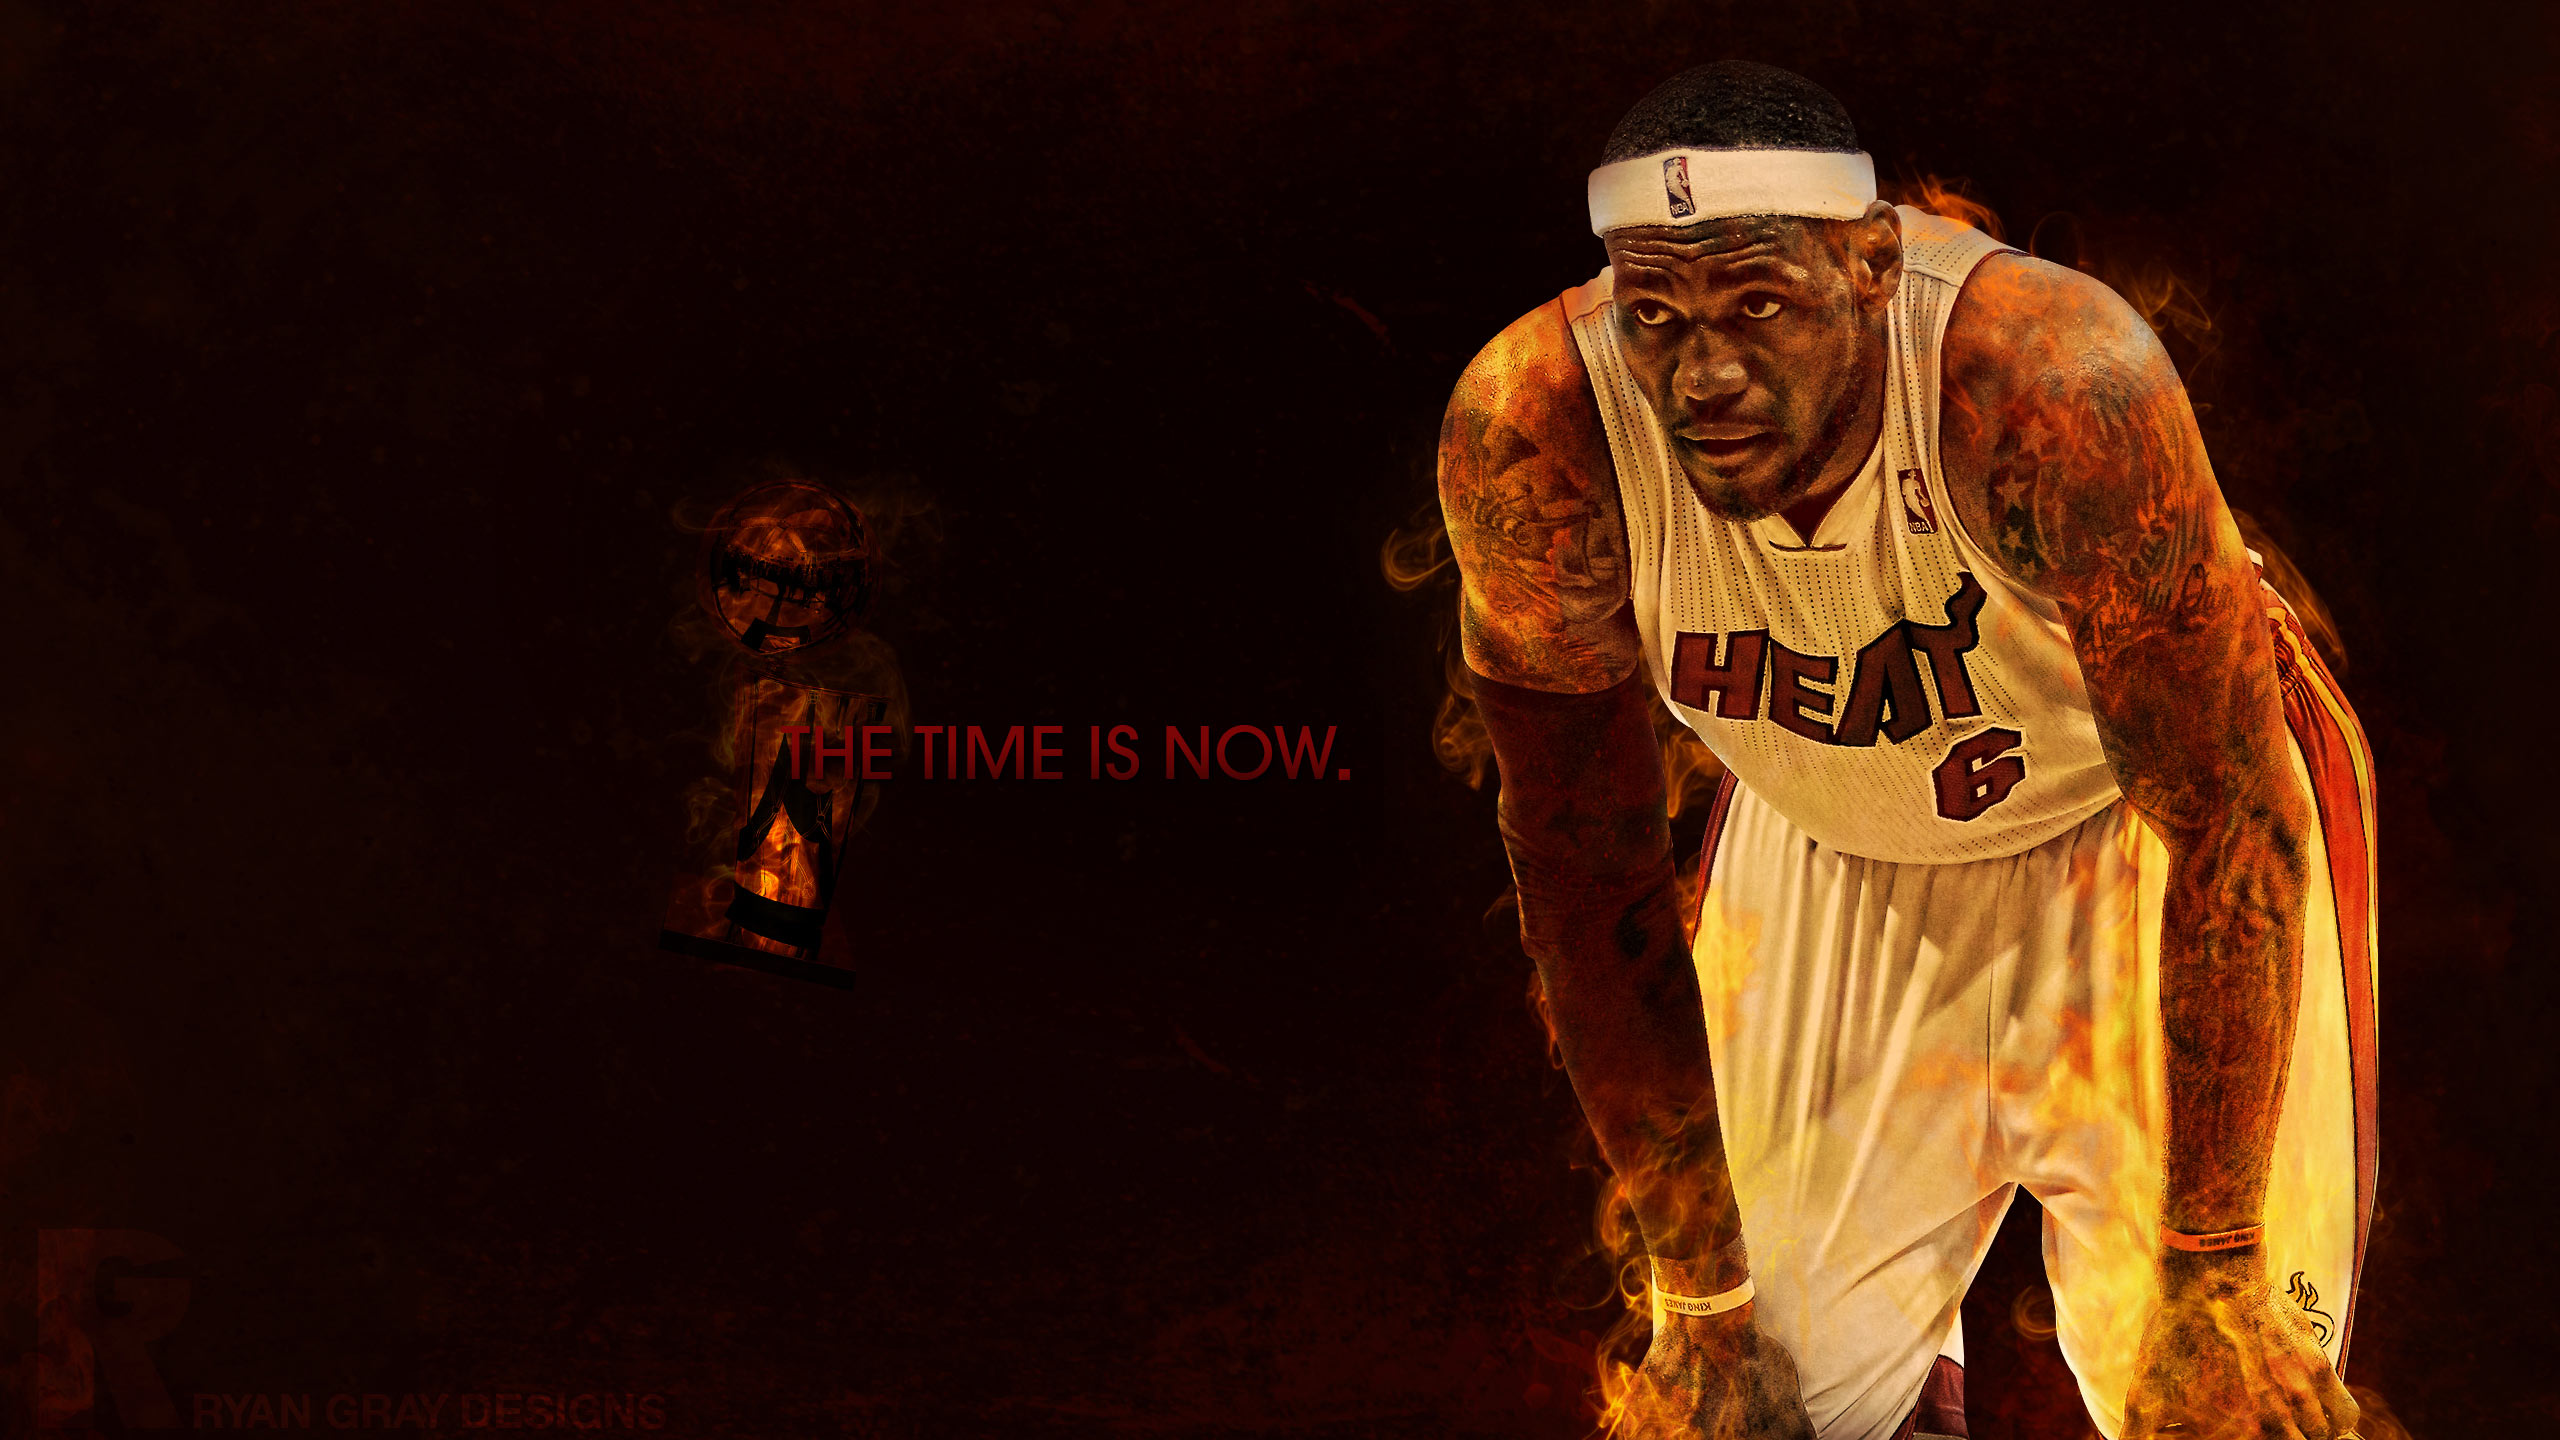 Lebron James Mvp Wallpapers Wallpaper  2560x1440